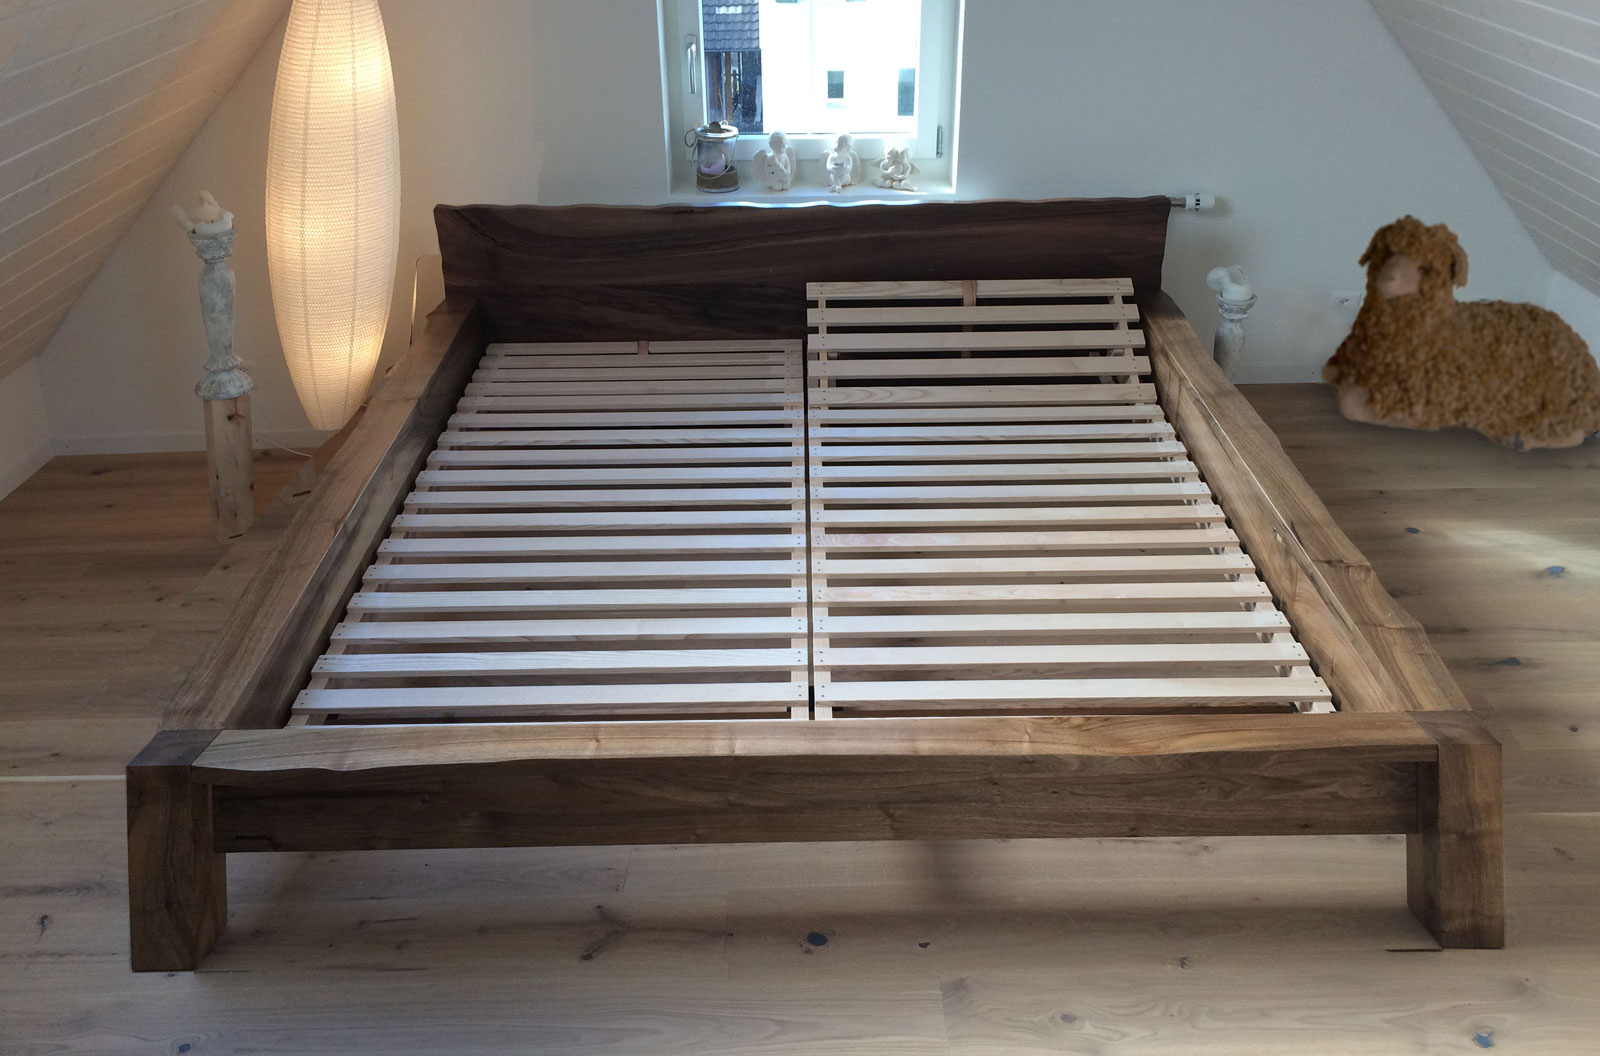 Bed of solidwood, made in Switzerland by Fischer